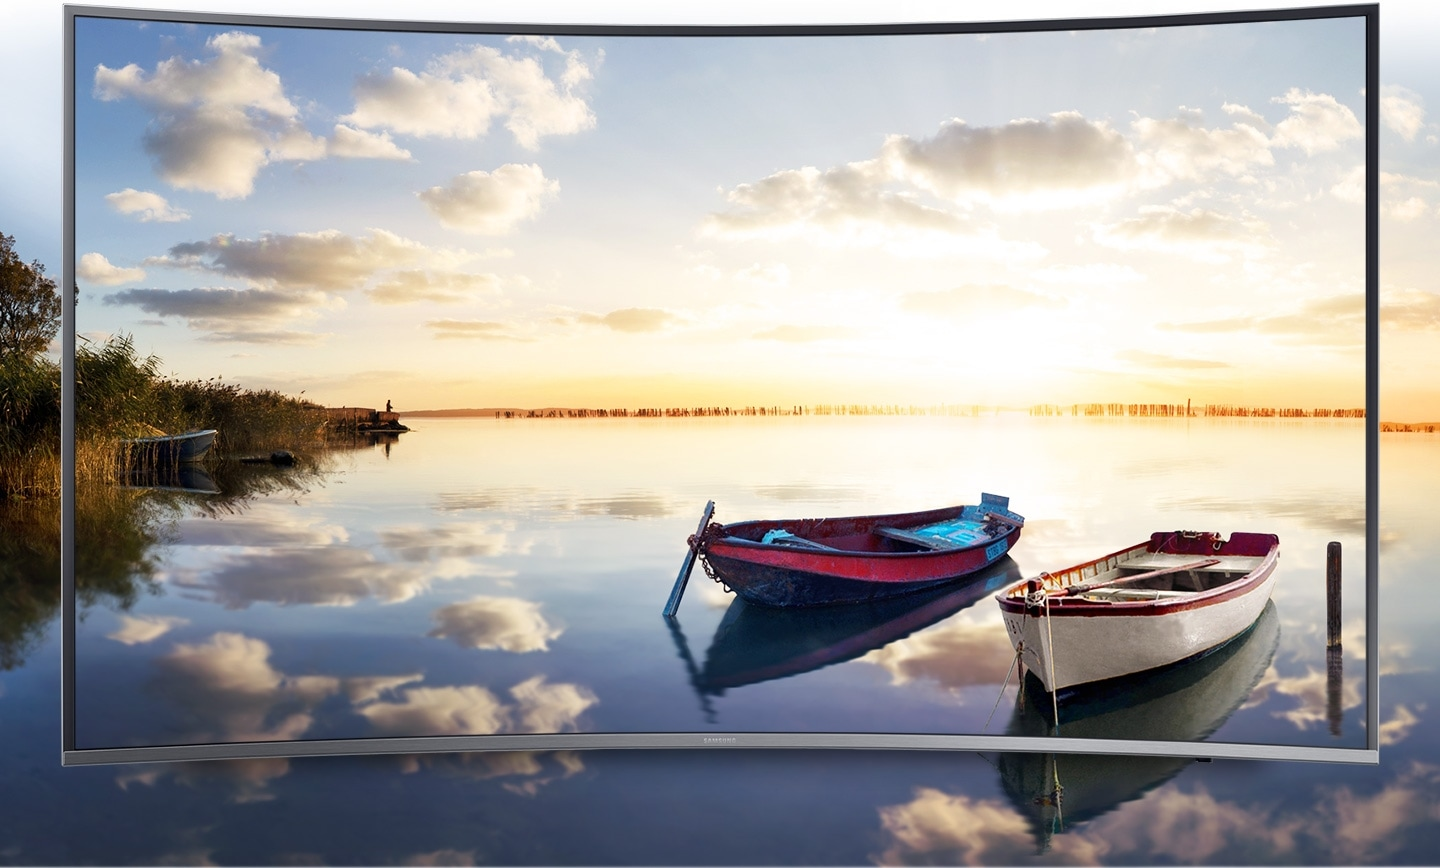 Bright and lively landscape image is on Samsung UHD TV screen..